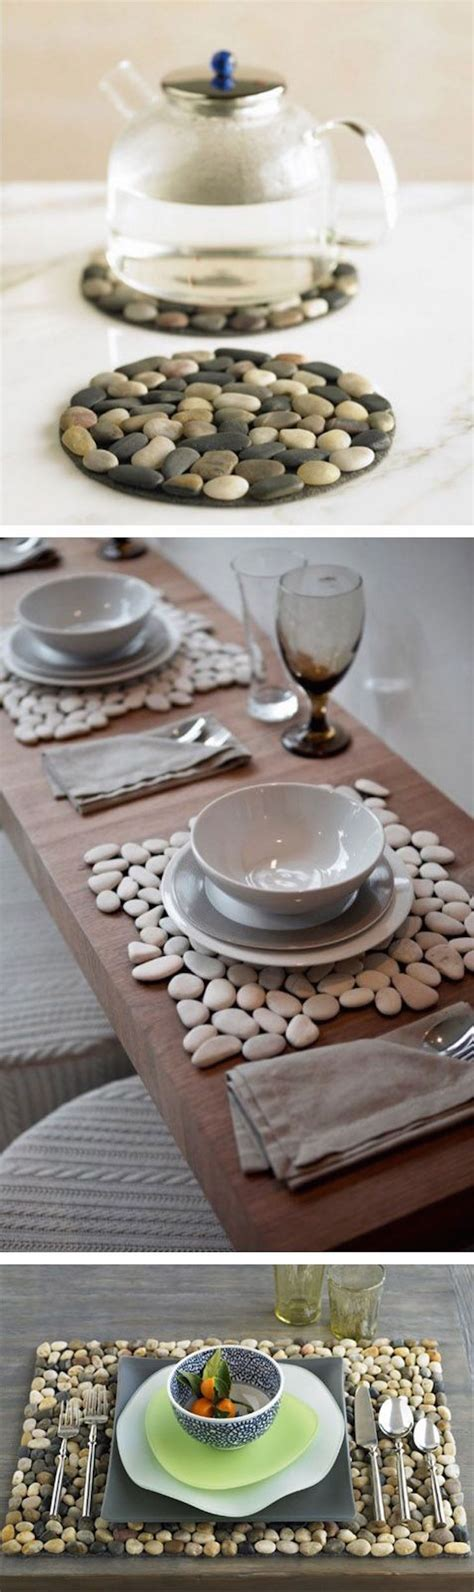 10 pebbles diy ideas image 9 diy crafts ideas magazine